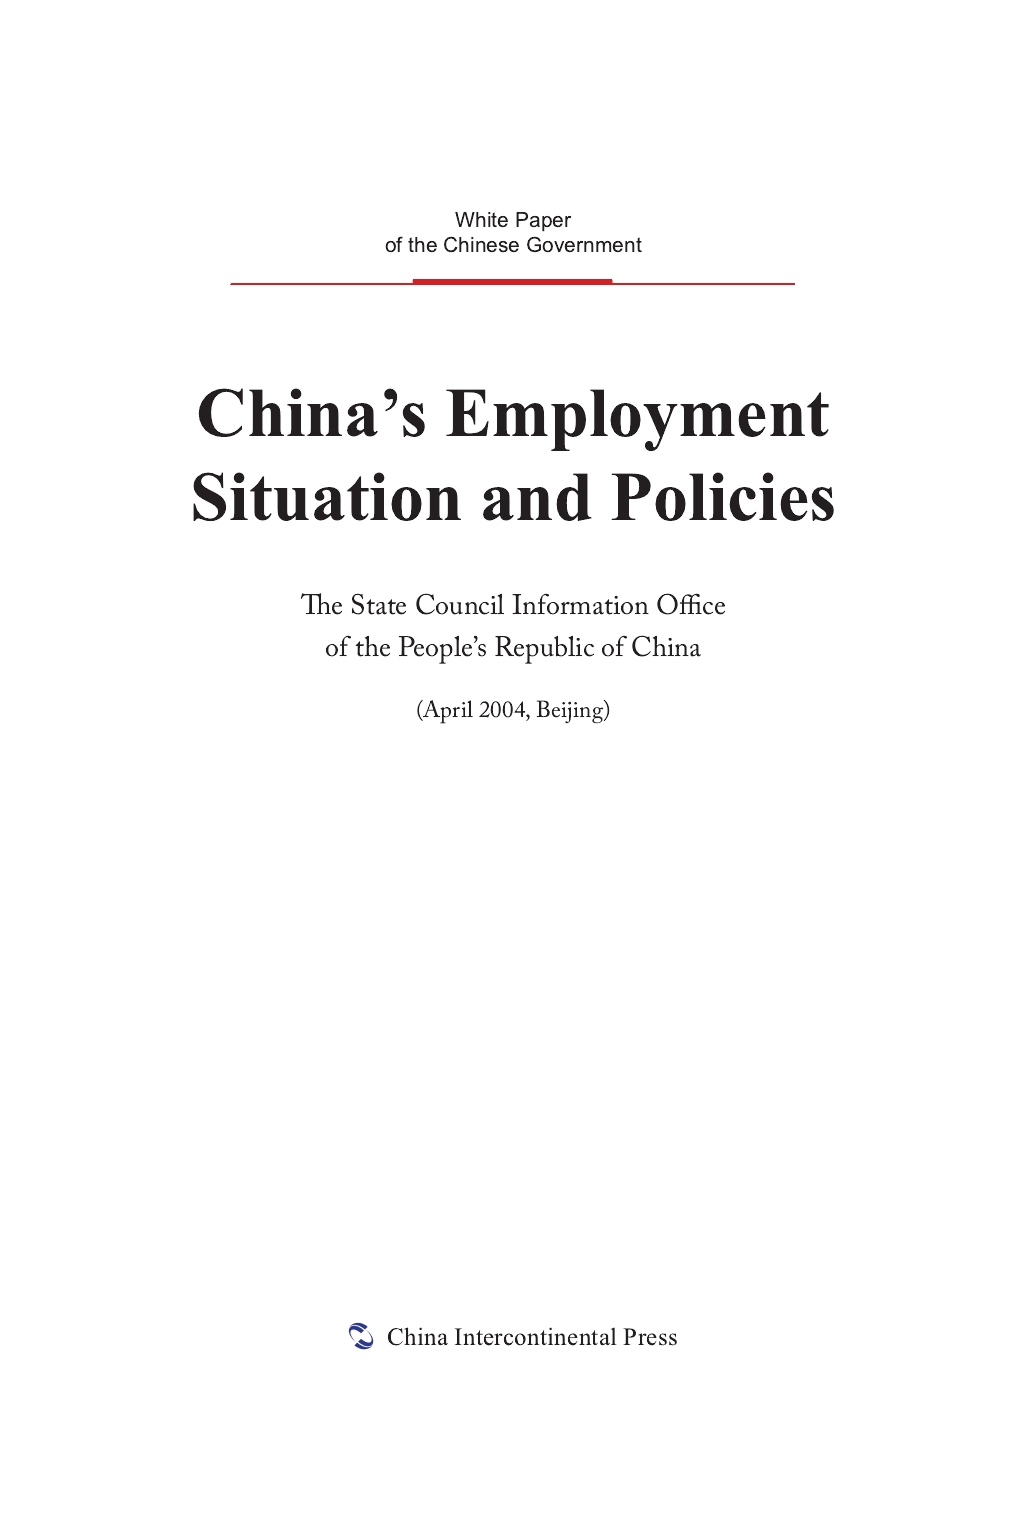 China's Employment Situation and Policies